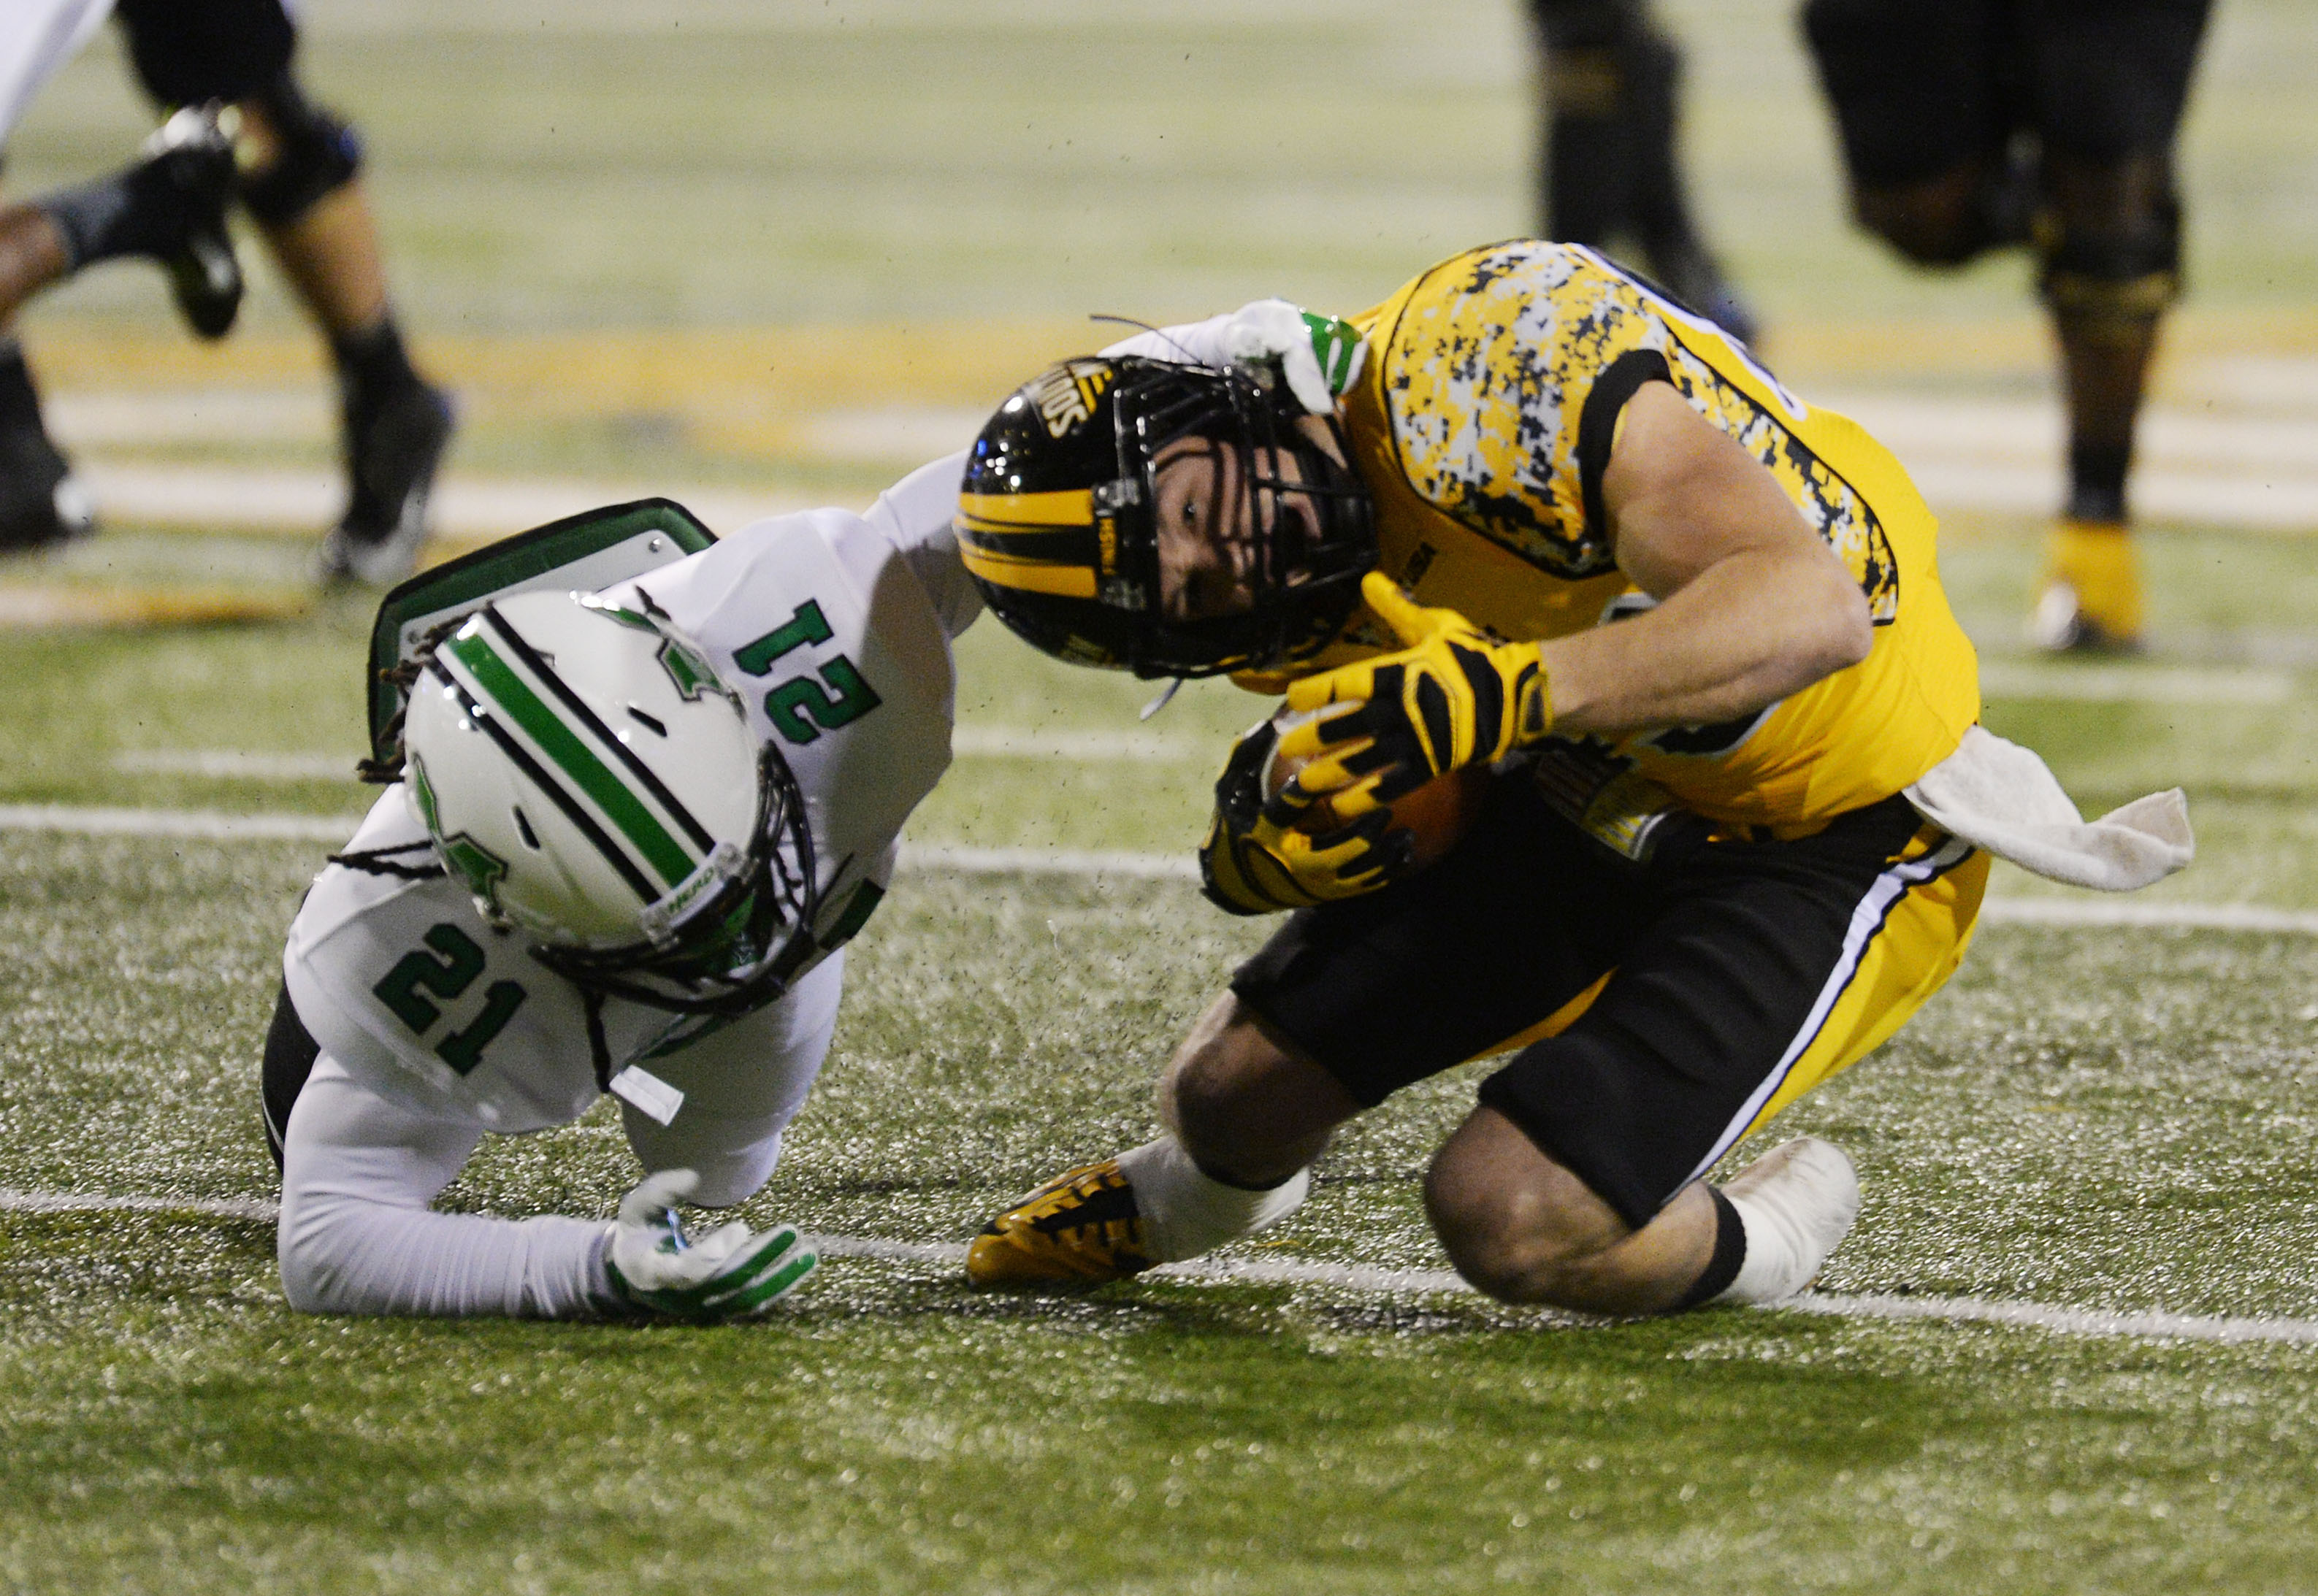 Southern Mississippi's Cooper Harrington (83) gets tackled by Marshall safety Tiquan Lang (21). (AP Photo/Steve Coleman)